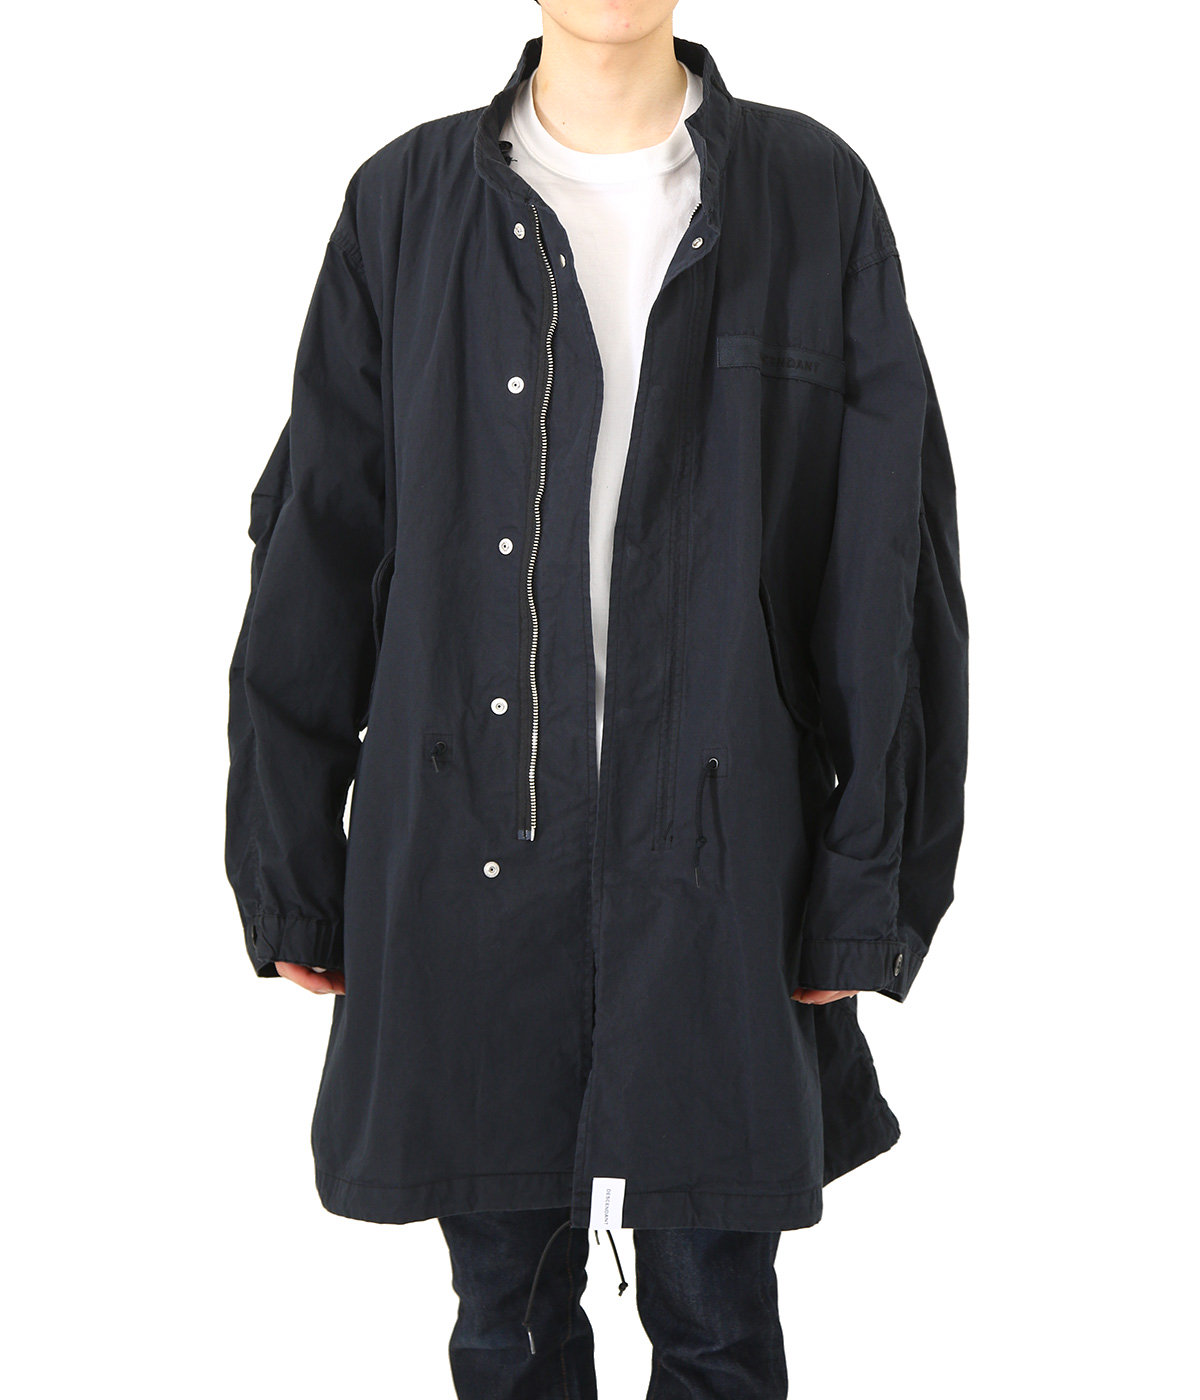 D-51M NYCO JACKET